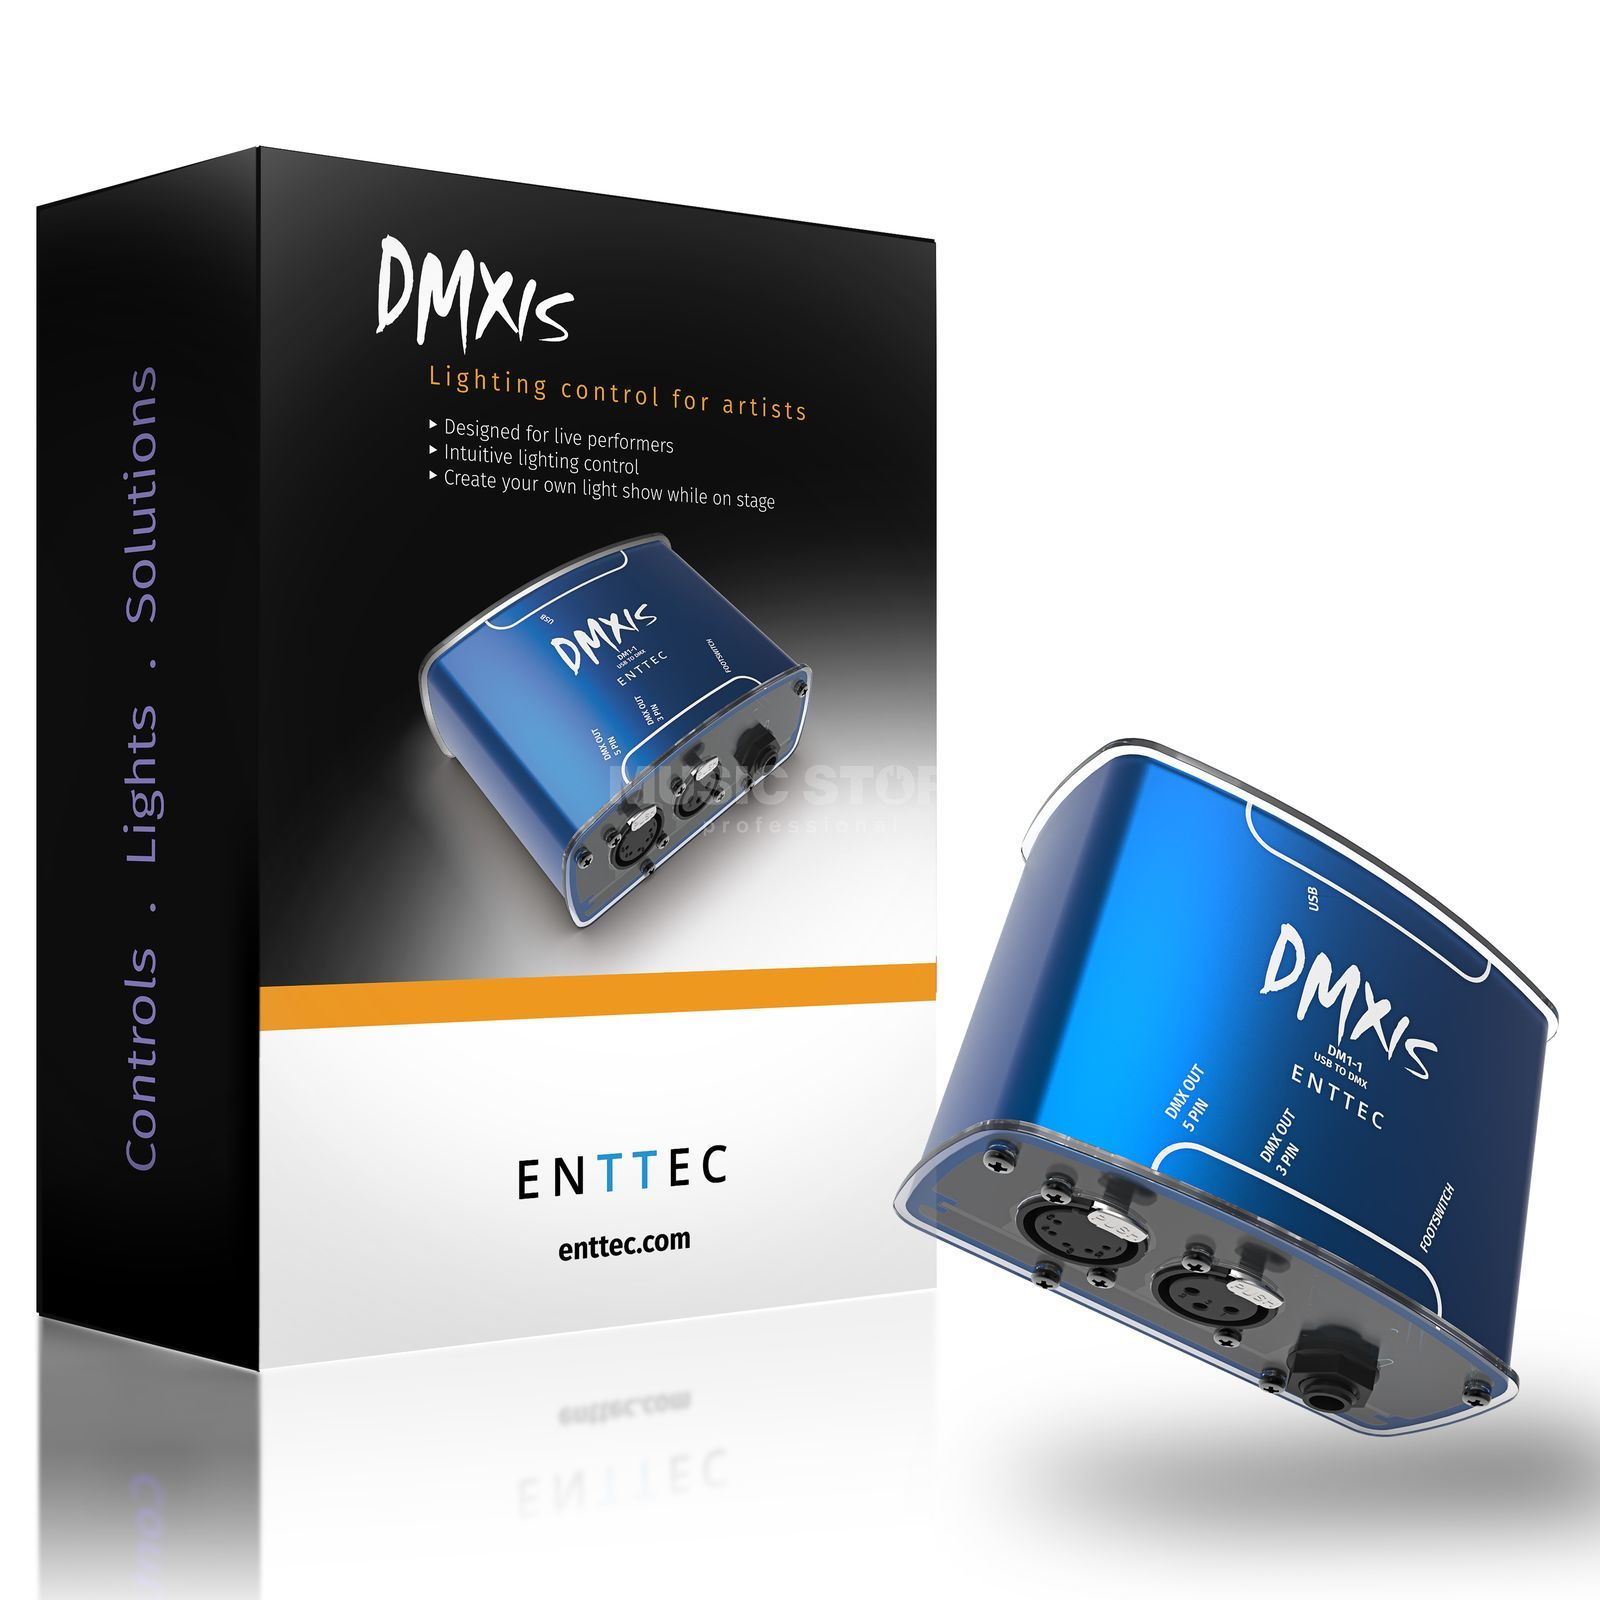 Enttec DMXIS lighting control package Product Image